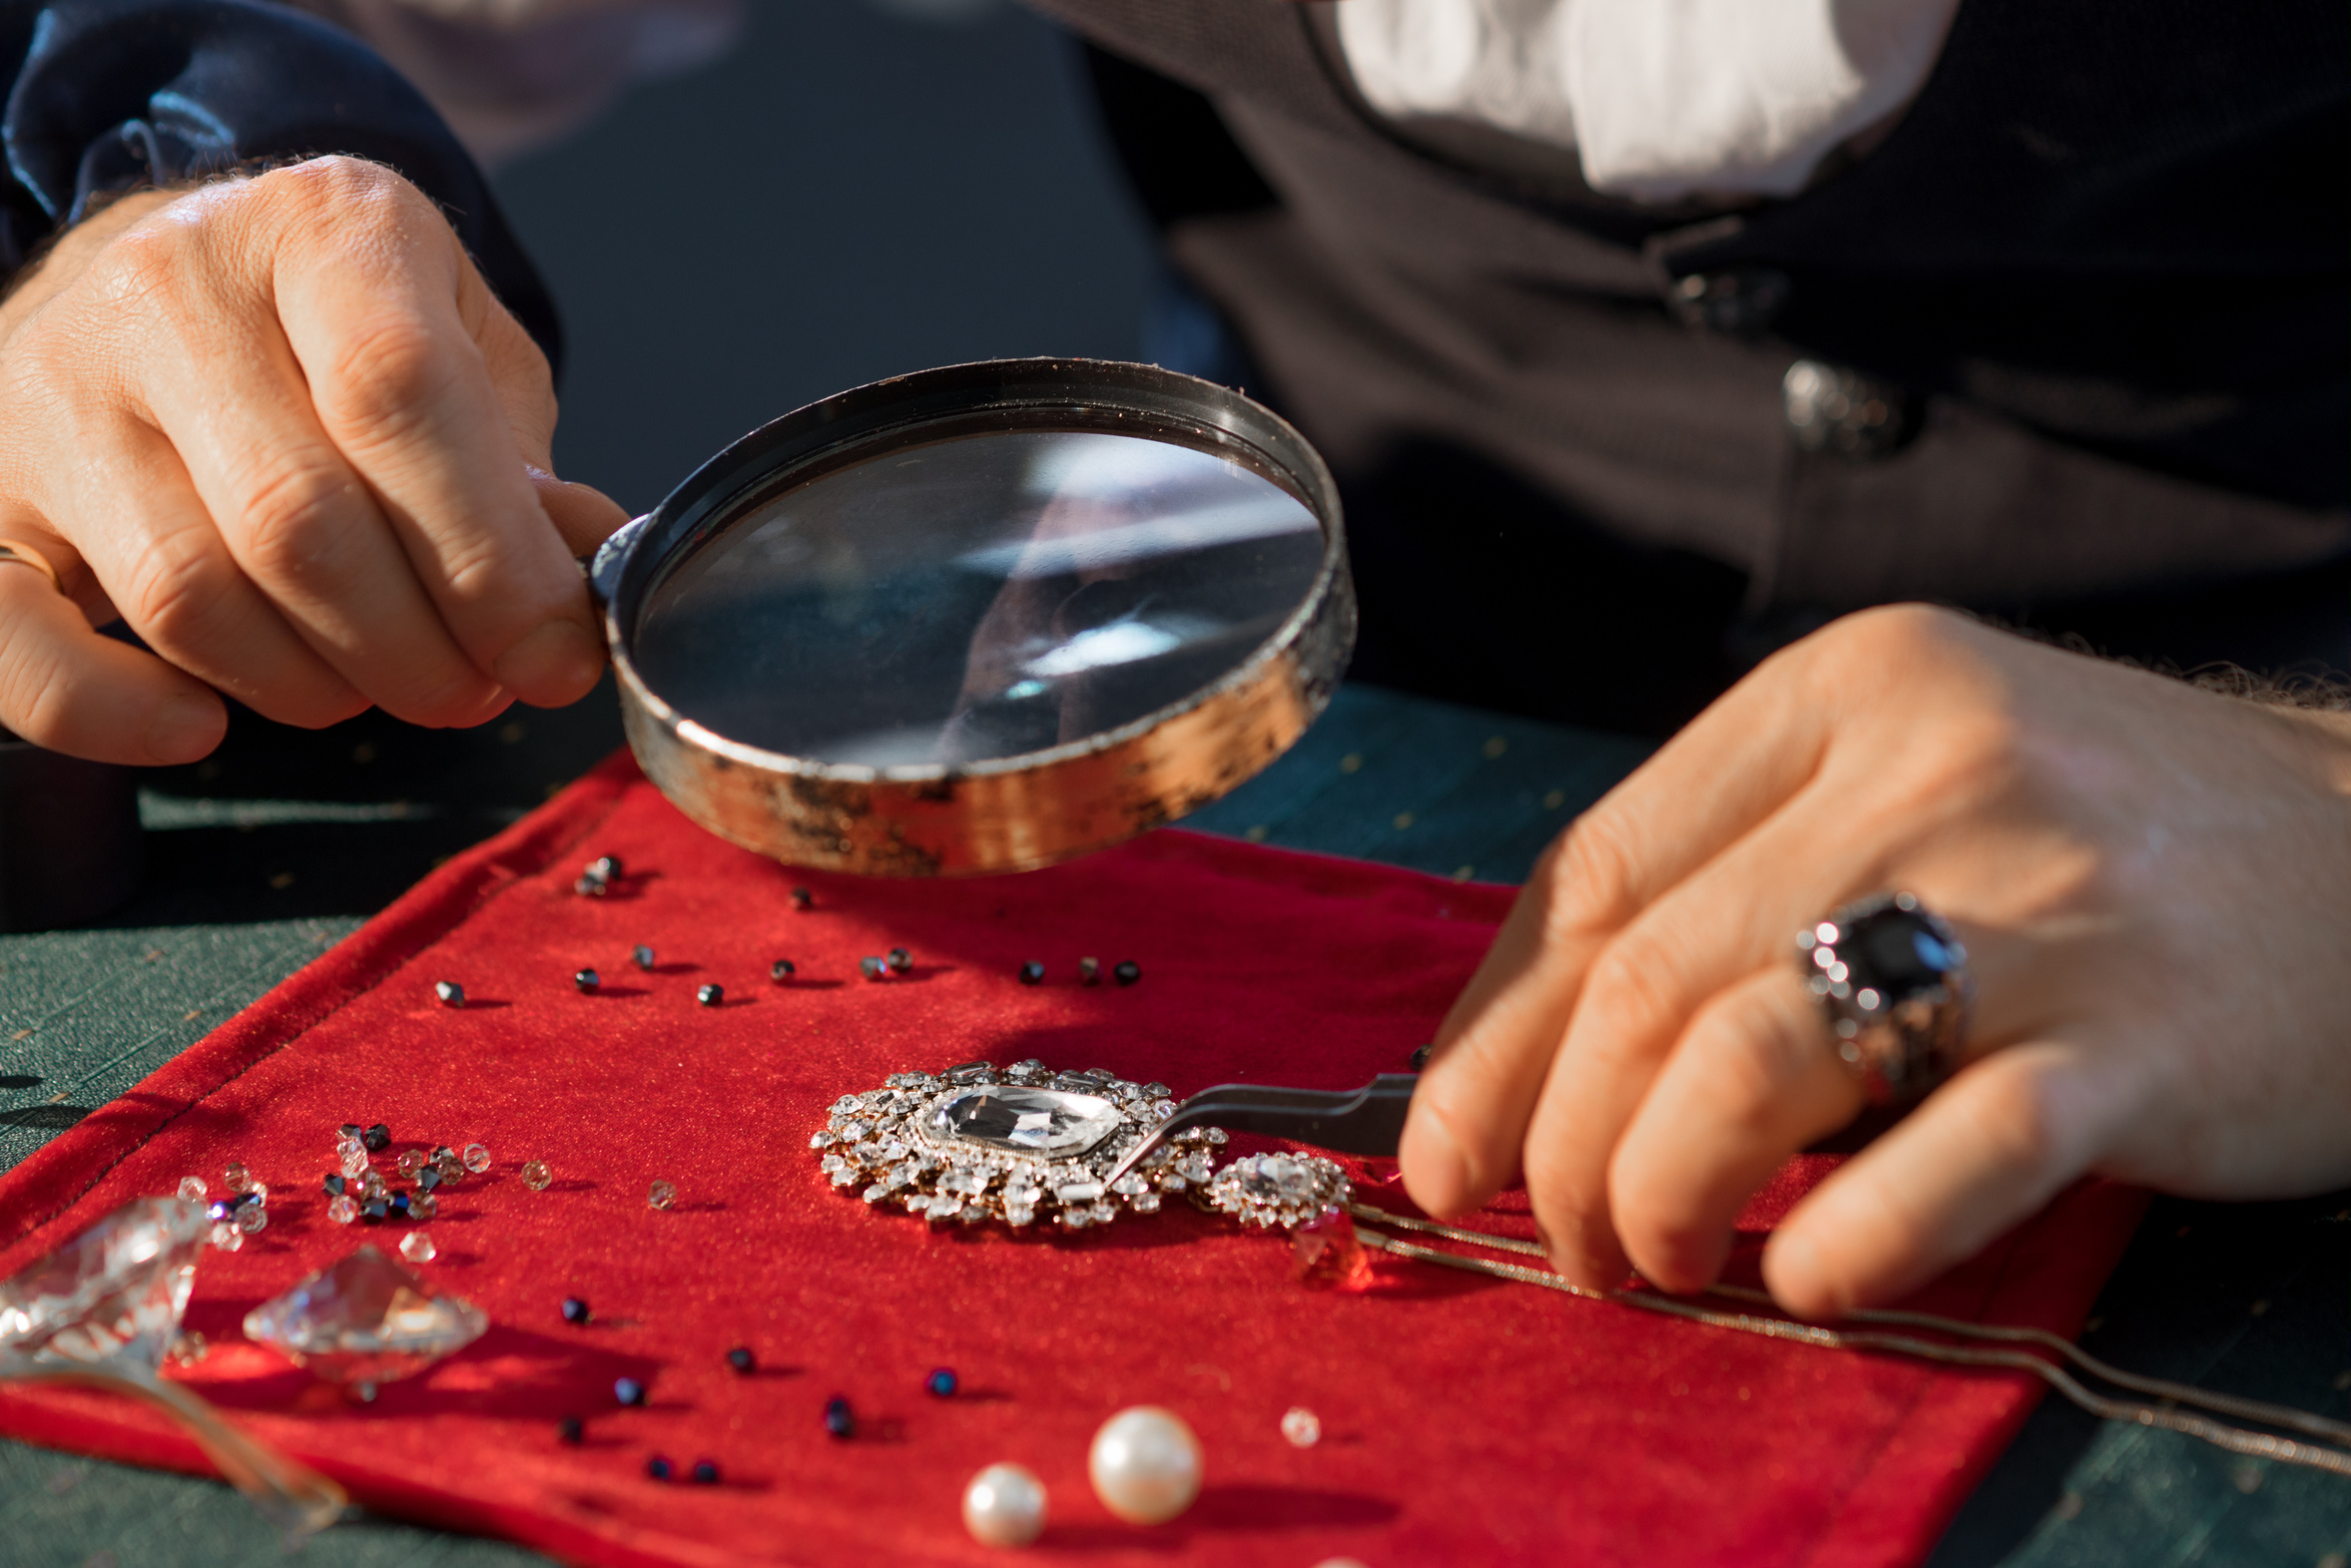 THE SECRET WORLD OF JEWELLERS